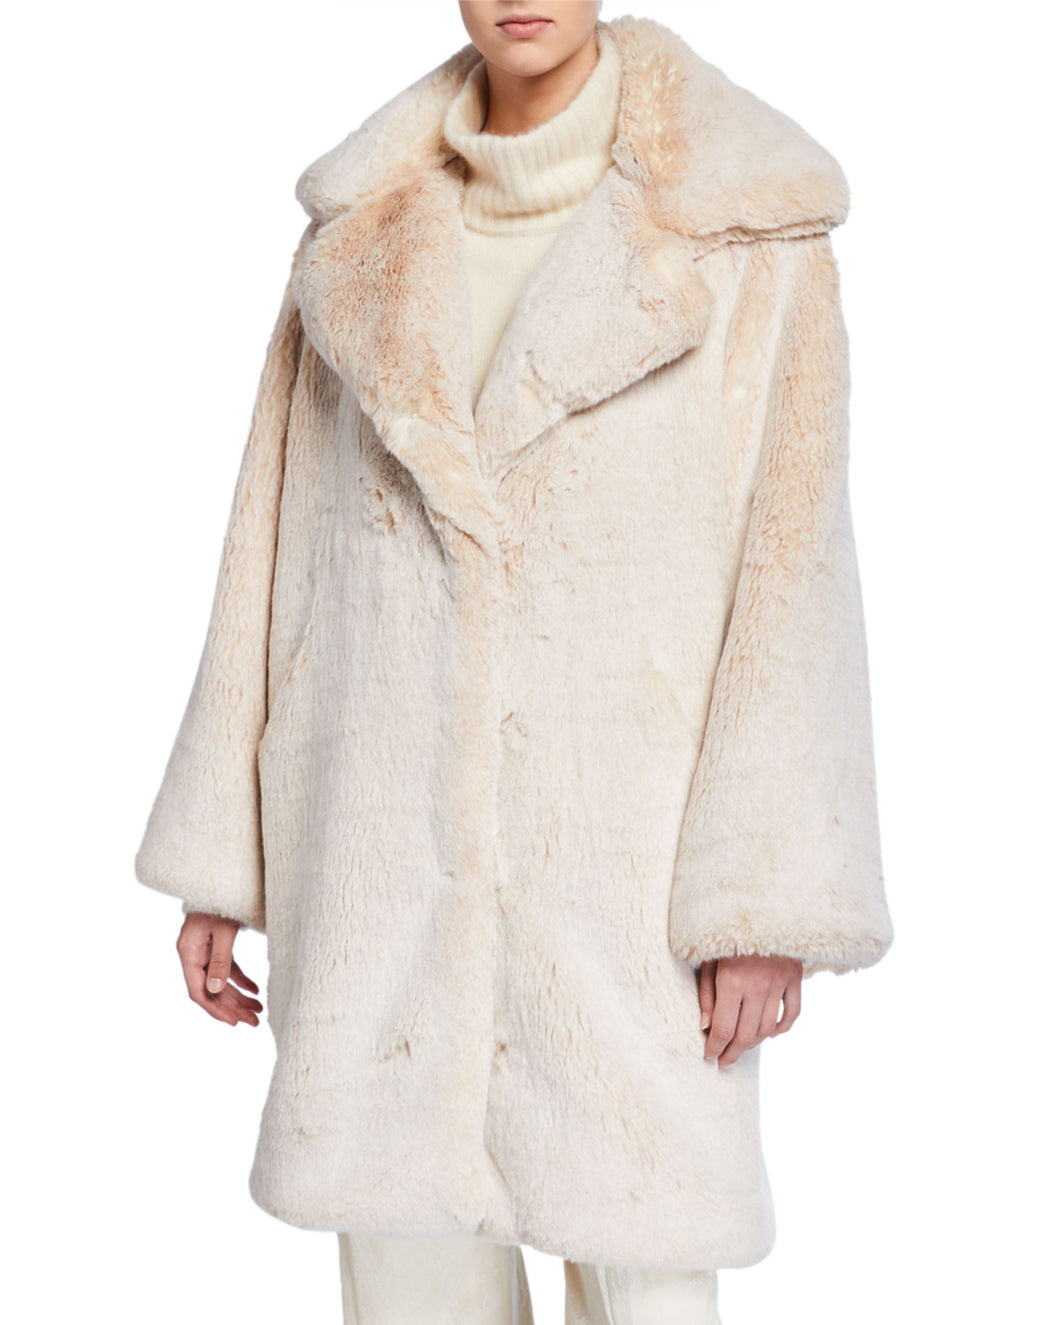 SALLY LAPOINTE - Oversized Faux Fur Coat